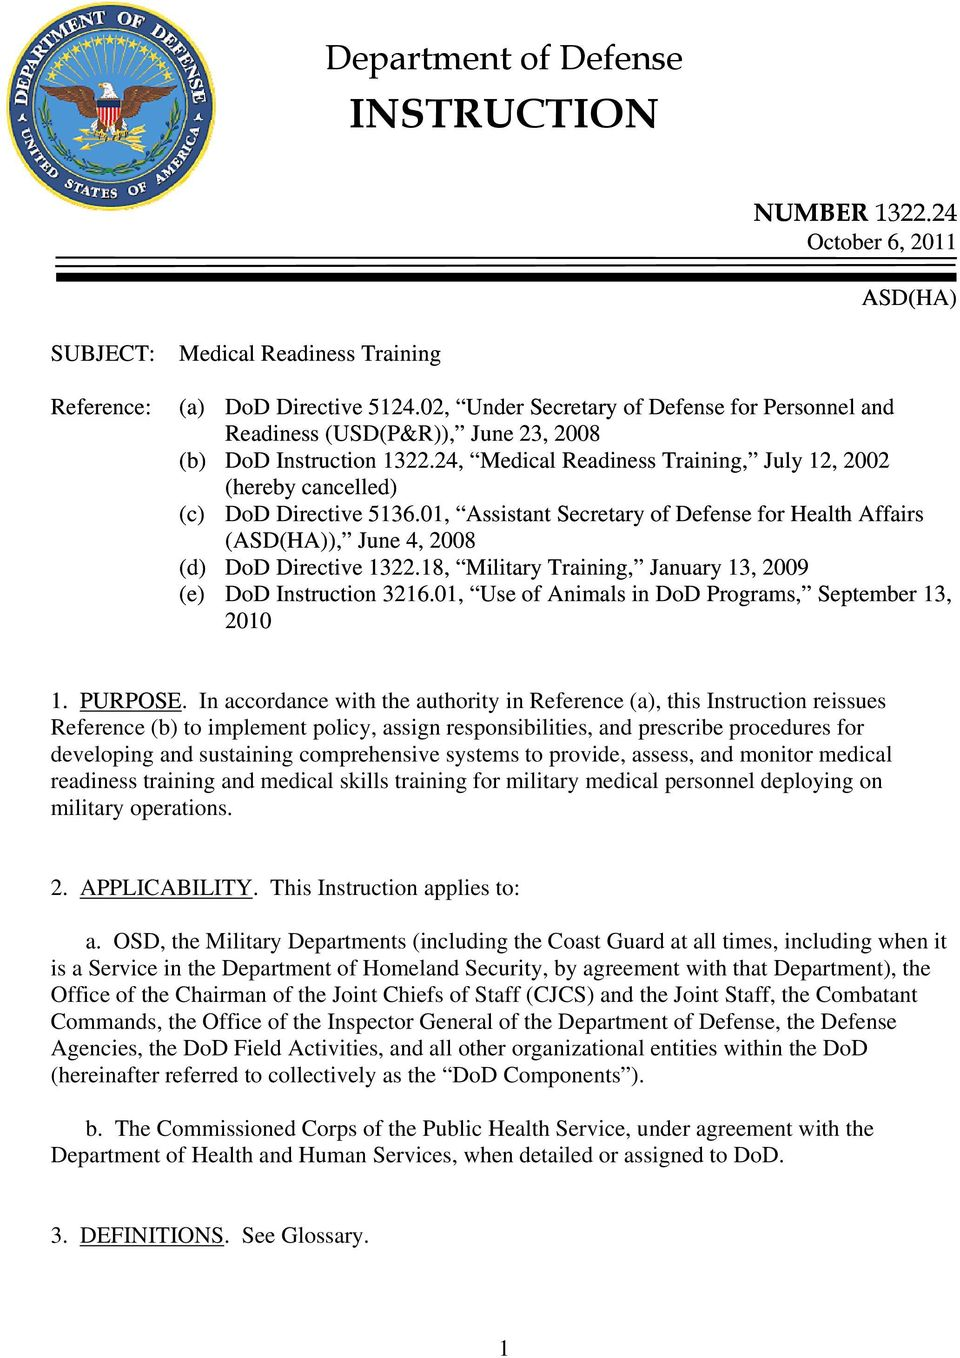 01, Assistant Secretary of Defense for Health Affairs (ASD(HA)), June 4, 2008 (d) DoD Directive 1322.18, Military Training, January 13, 2009 (e) DoD Instruction 3216.